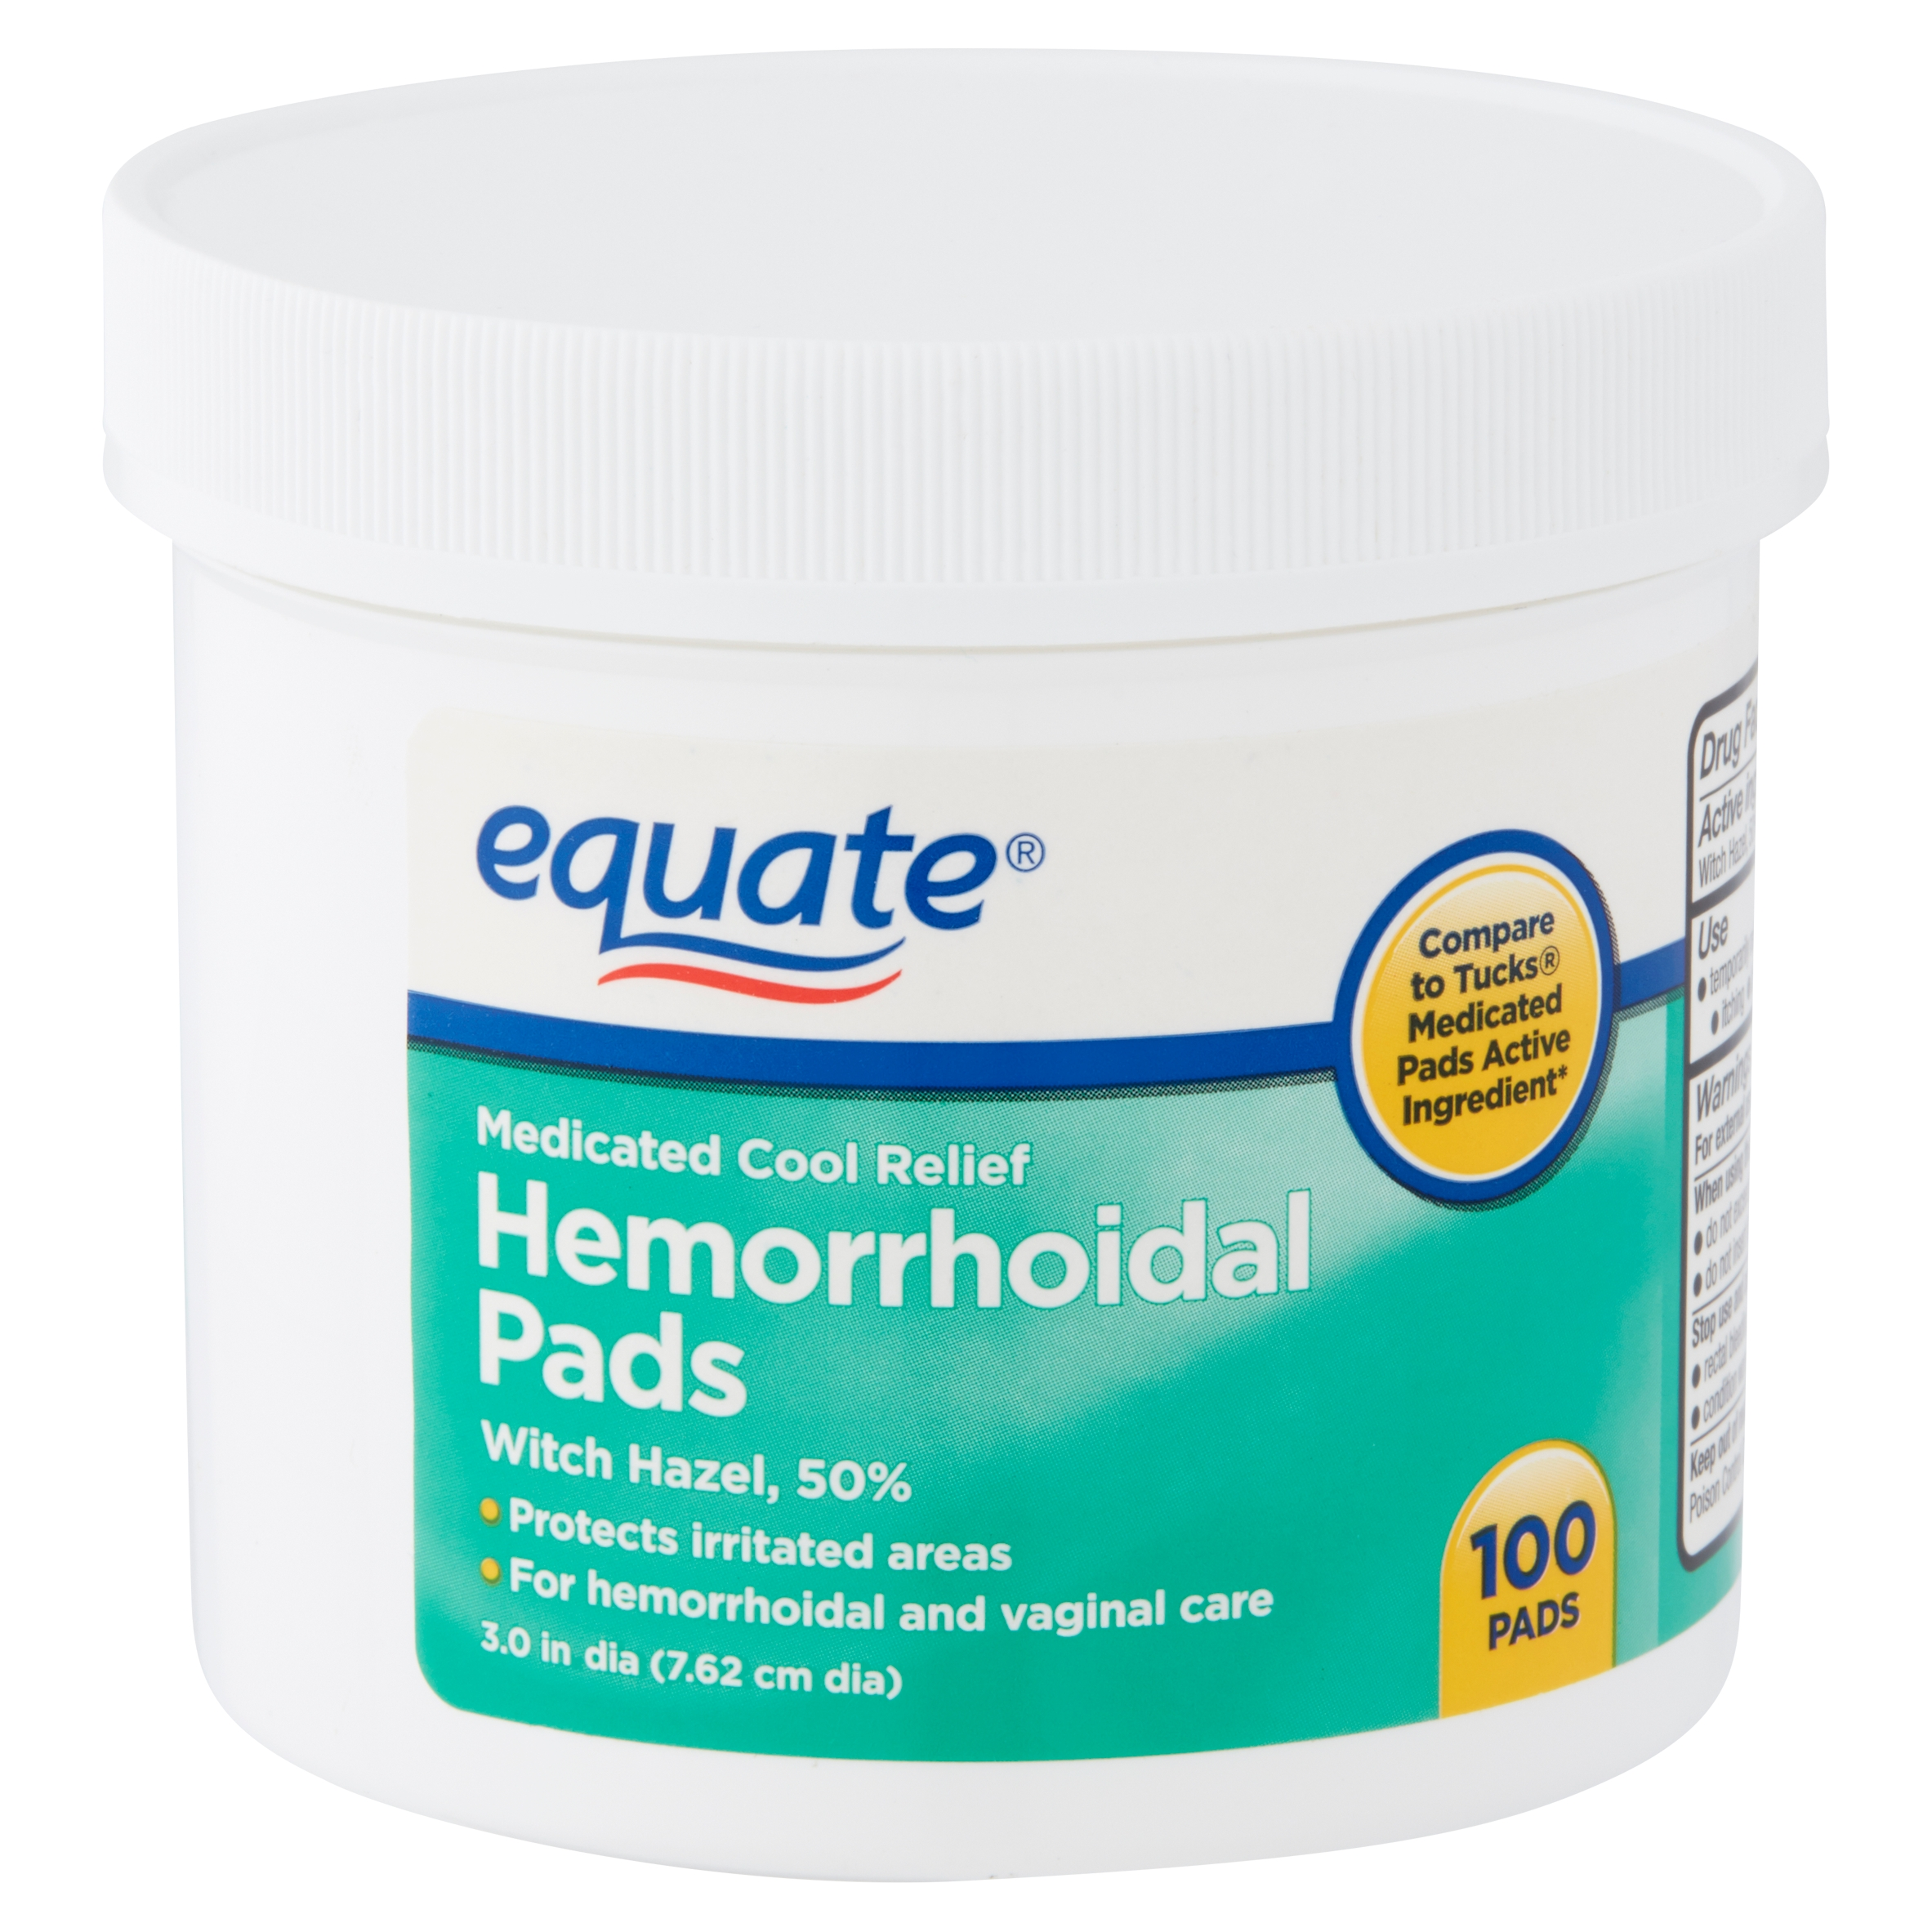 Equate Medicated Cool Relief Hemorrhoidal Pads, 100 count